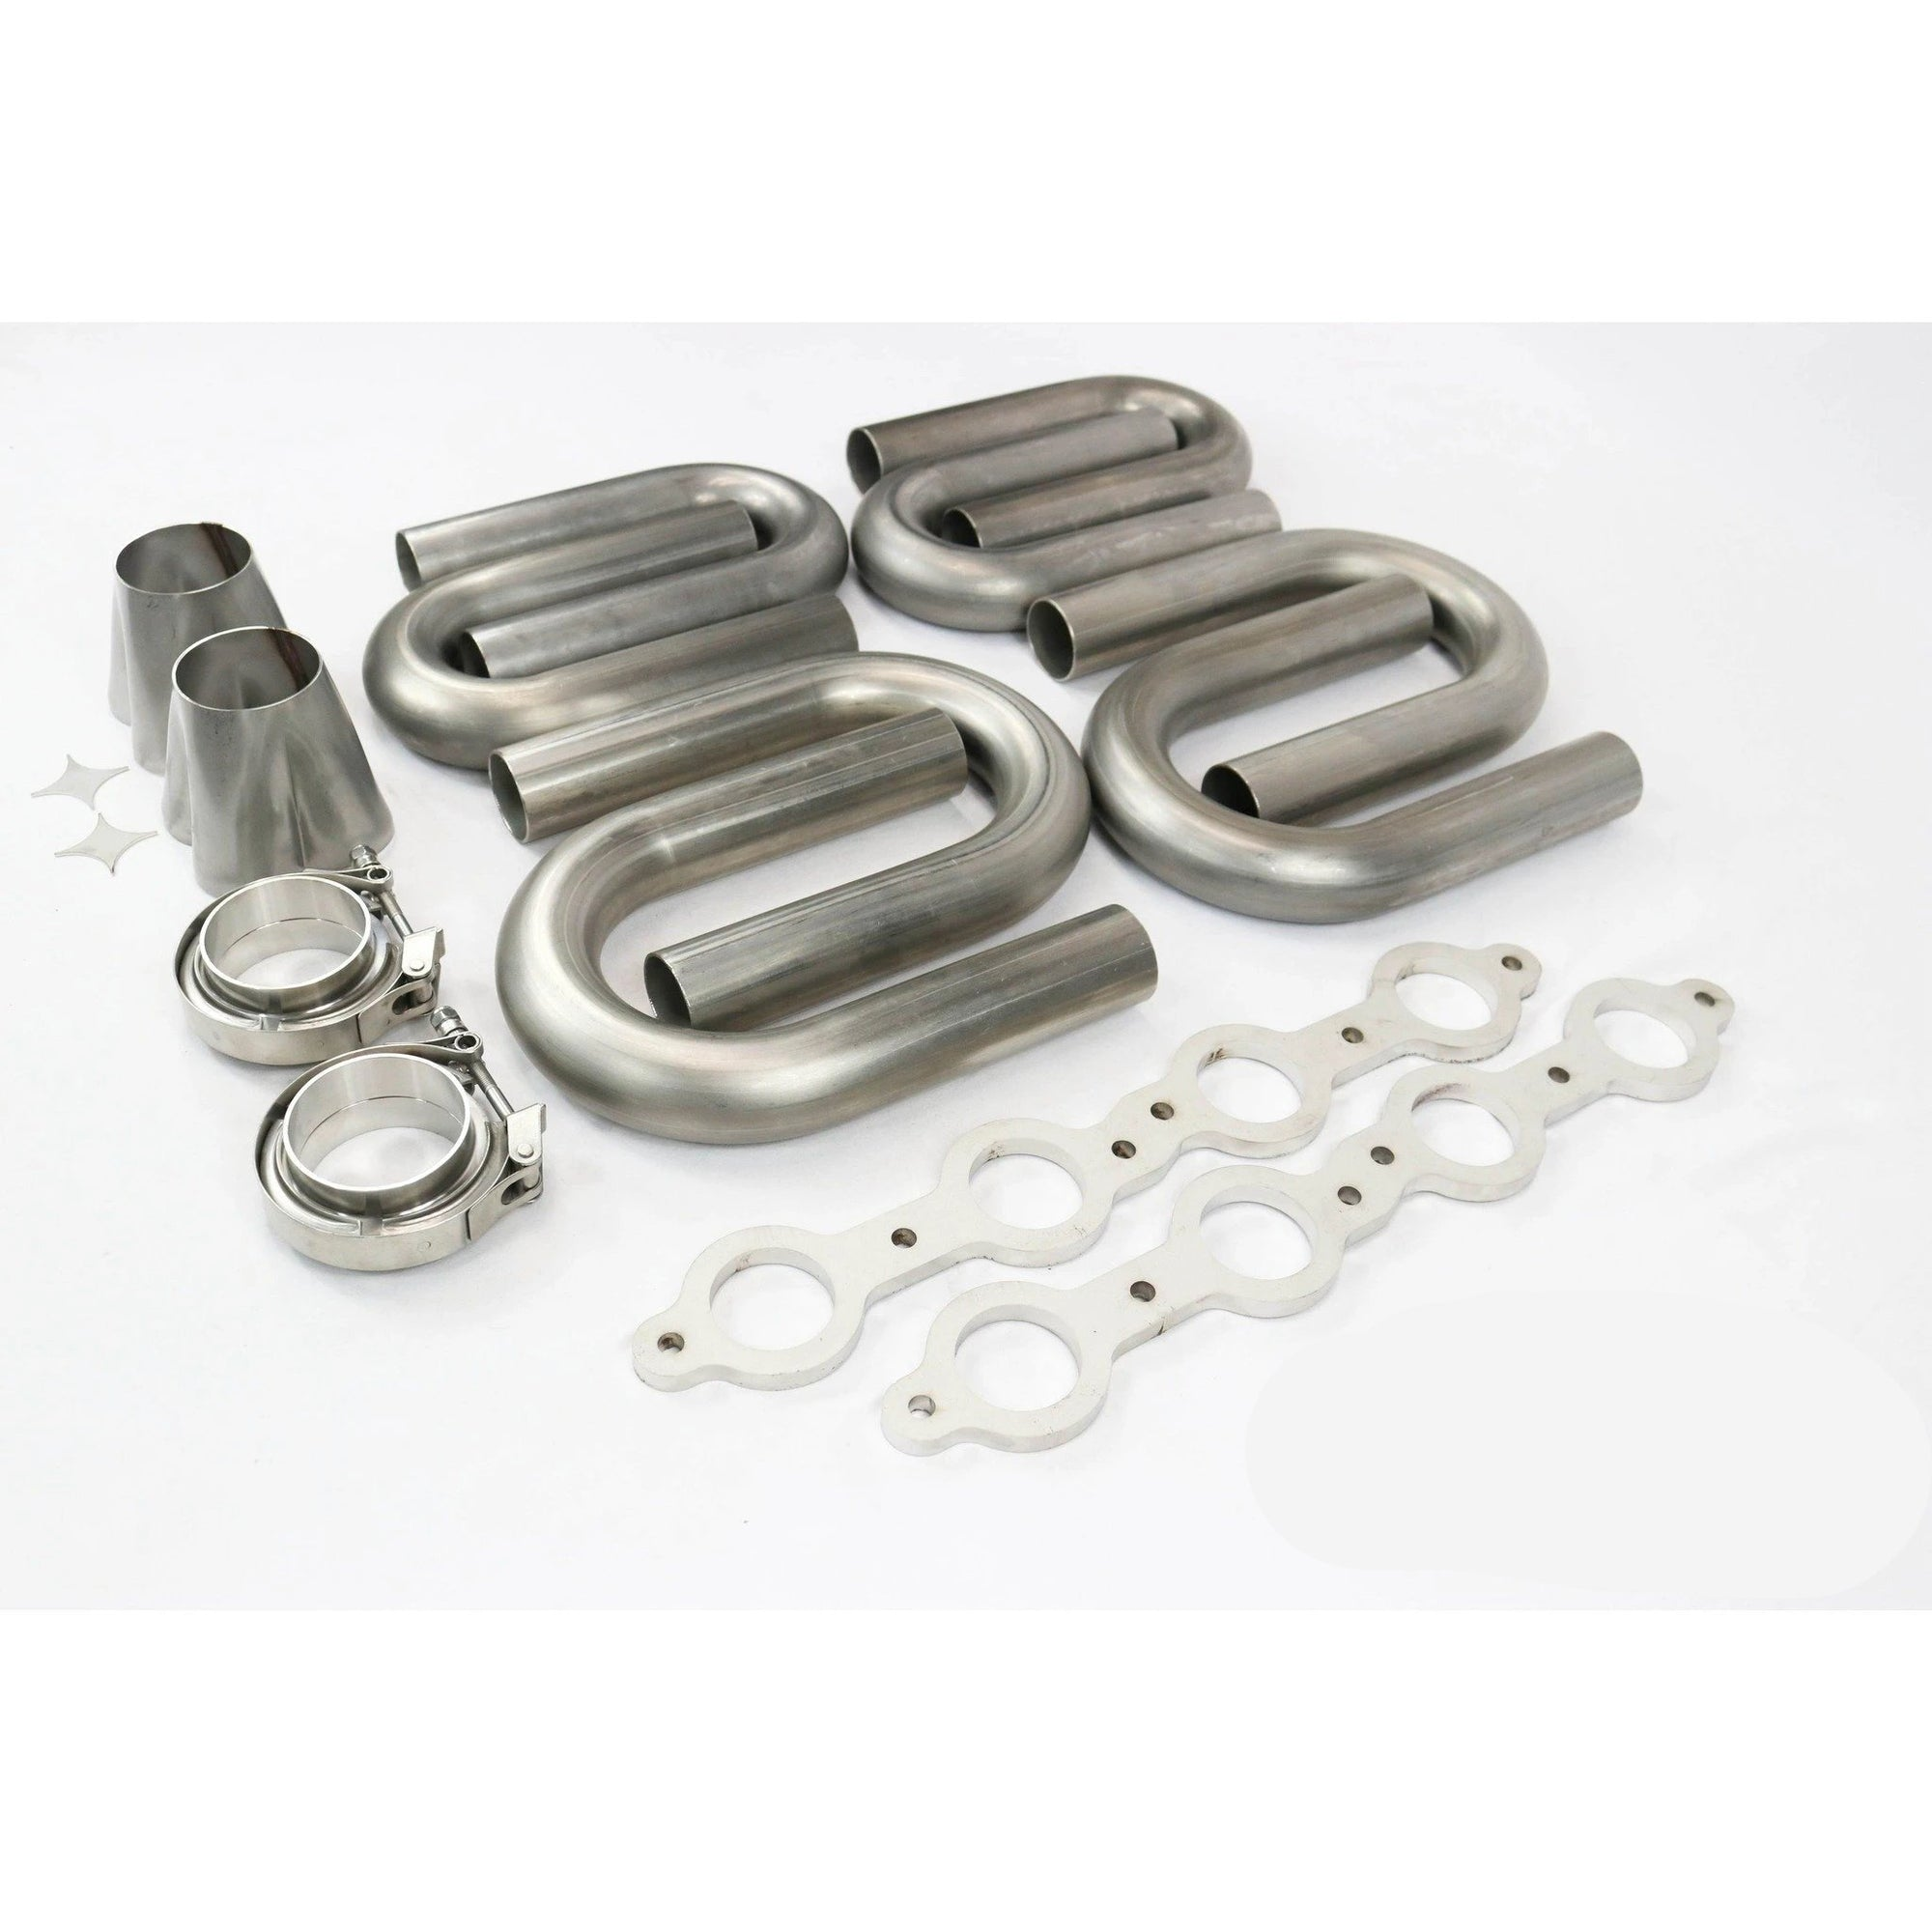 "Motion Raceworks LS1 1.875"" Primary 304 Stainless Steel Turbo Header Kit - Motion Raceworks"